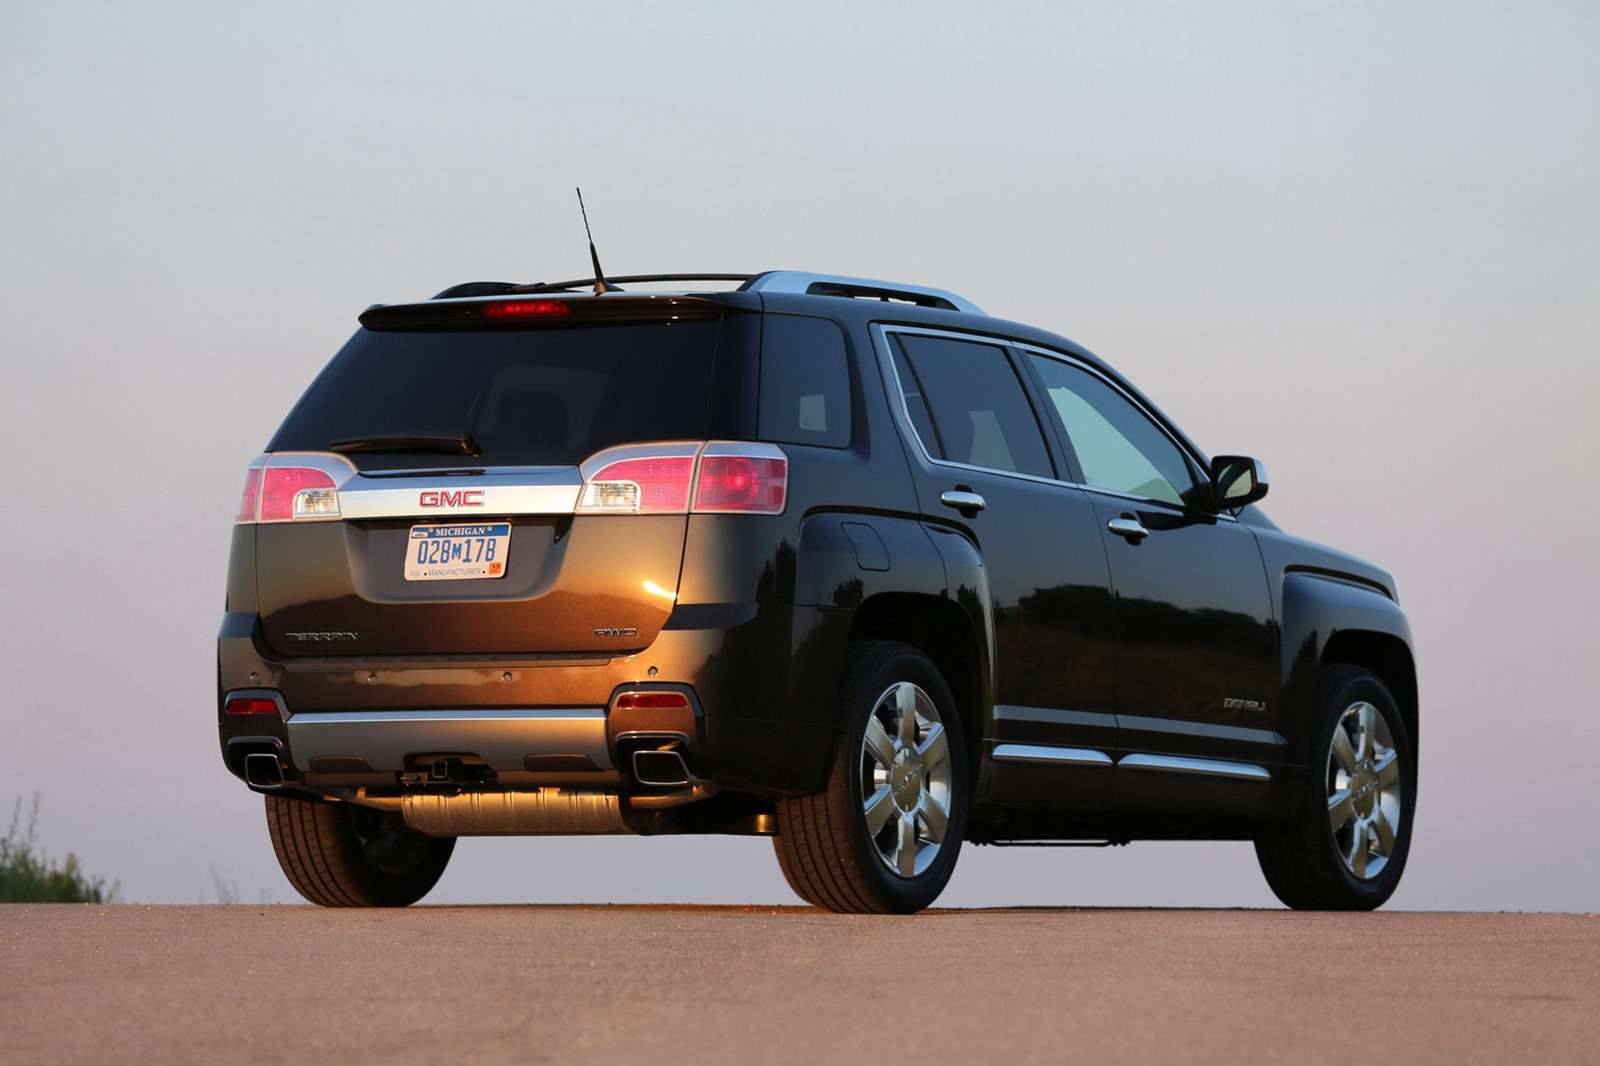 2013 GMC Terrain Denali 3 2013 GMC Terrain Denali with Price Range from $35,350 to $38,600